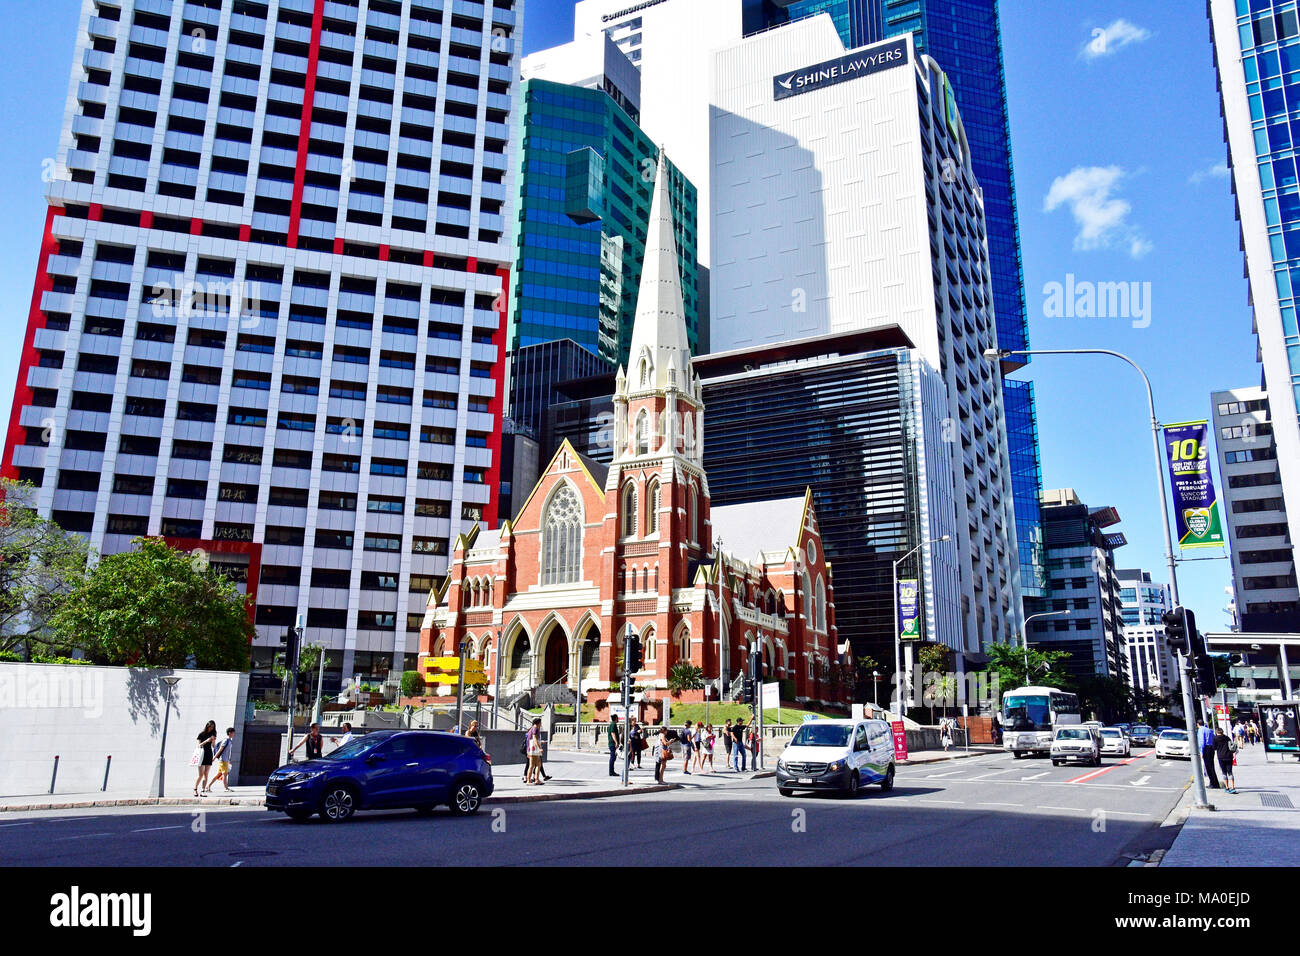 CHURCH SURROUNDED BY HIGH RISE BUILDINGS IN BRISBANE CITY AUSTRALIA - Stock Image